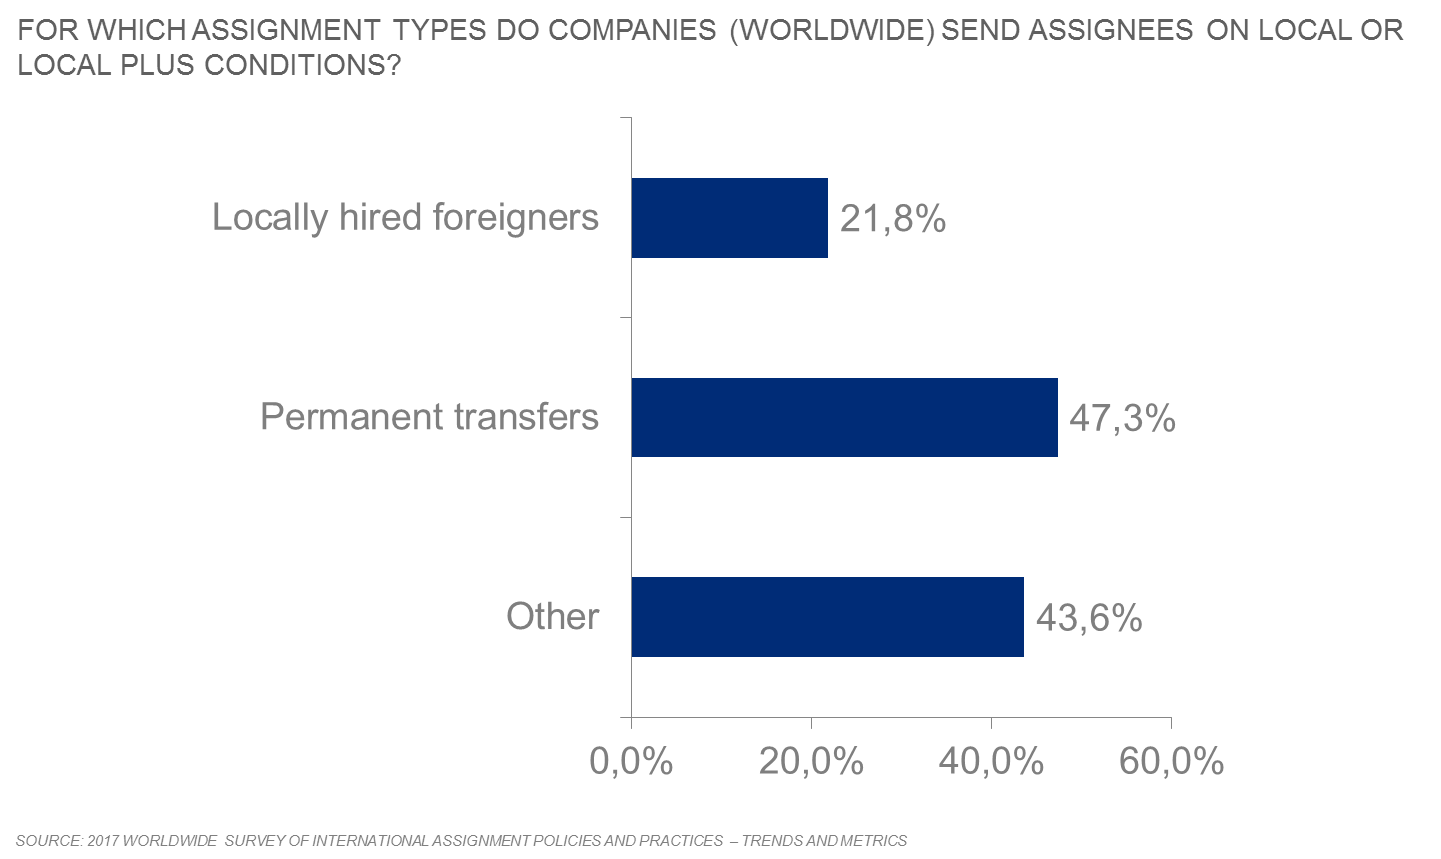 For what types of hires do companies use local or local-plus approaches - Mercer survey highlight